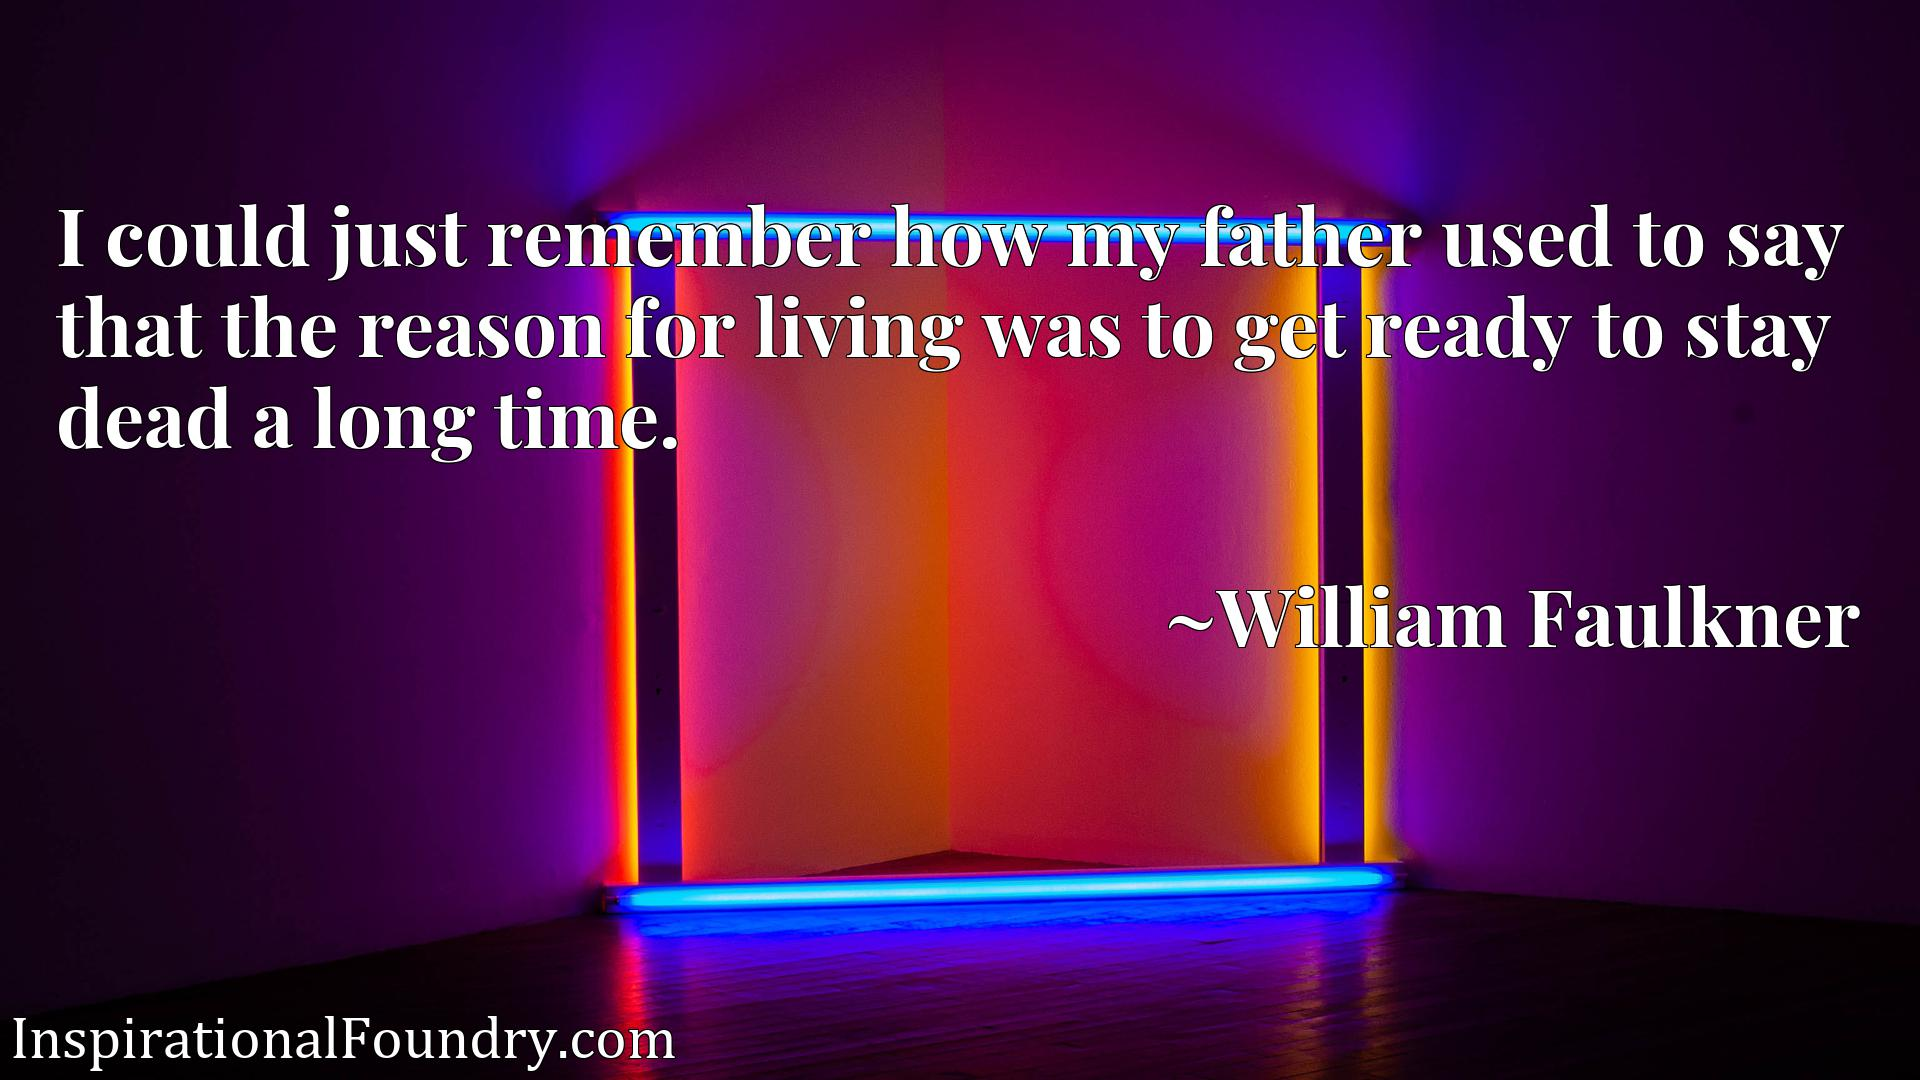 I could just remember how my father used to say that the reason for living was to get ready to stay dead a long time.